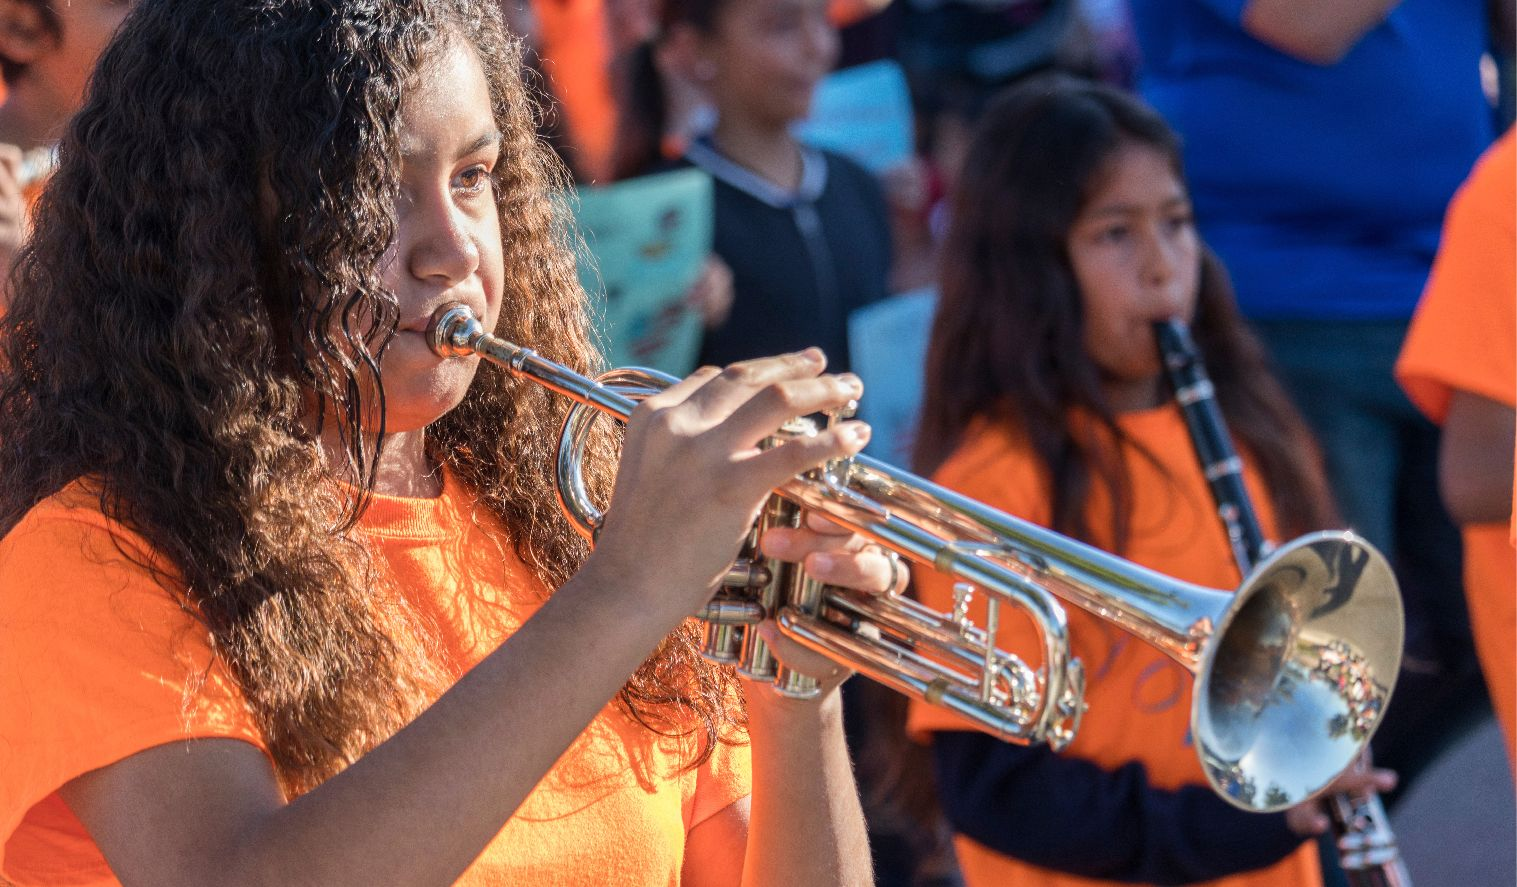 Image: A student playing a trumpet